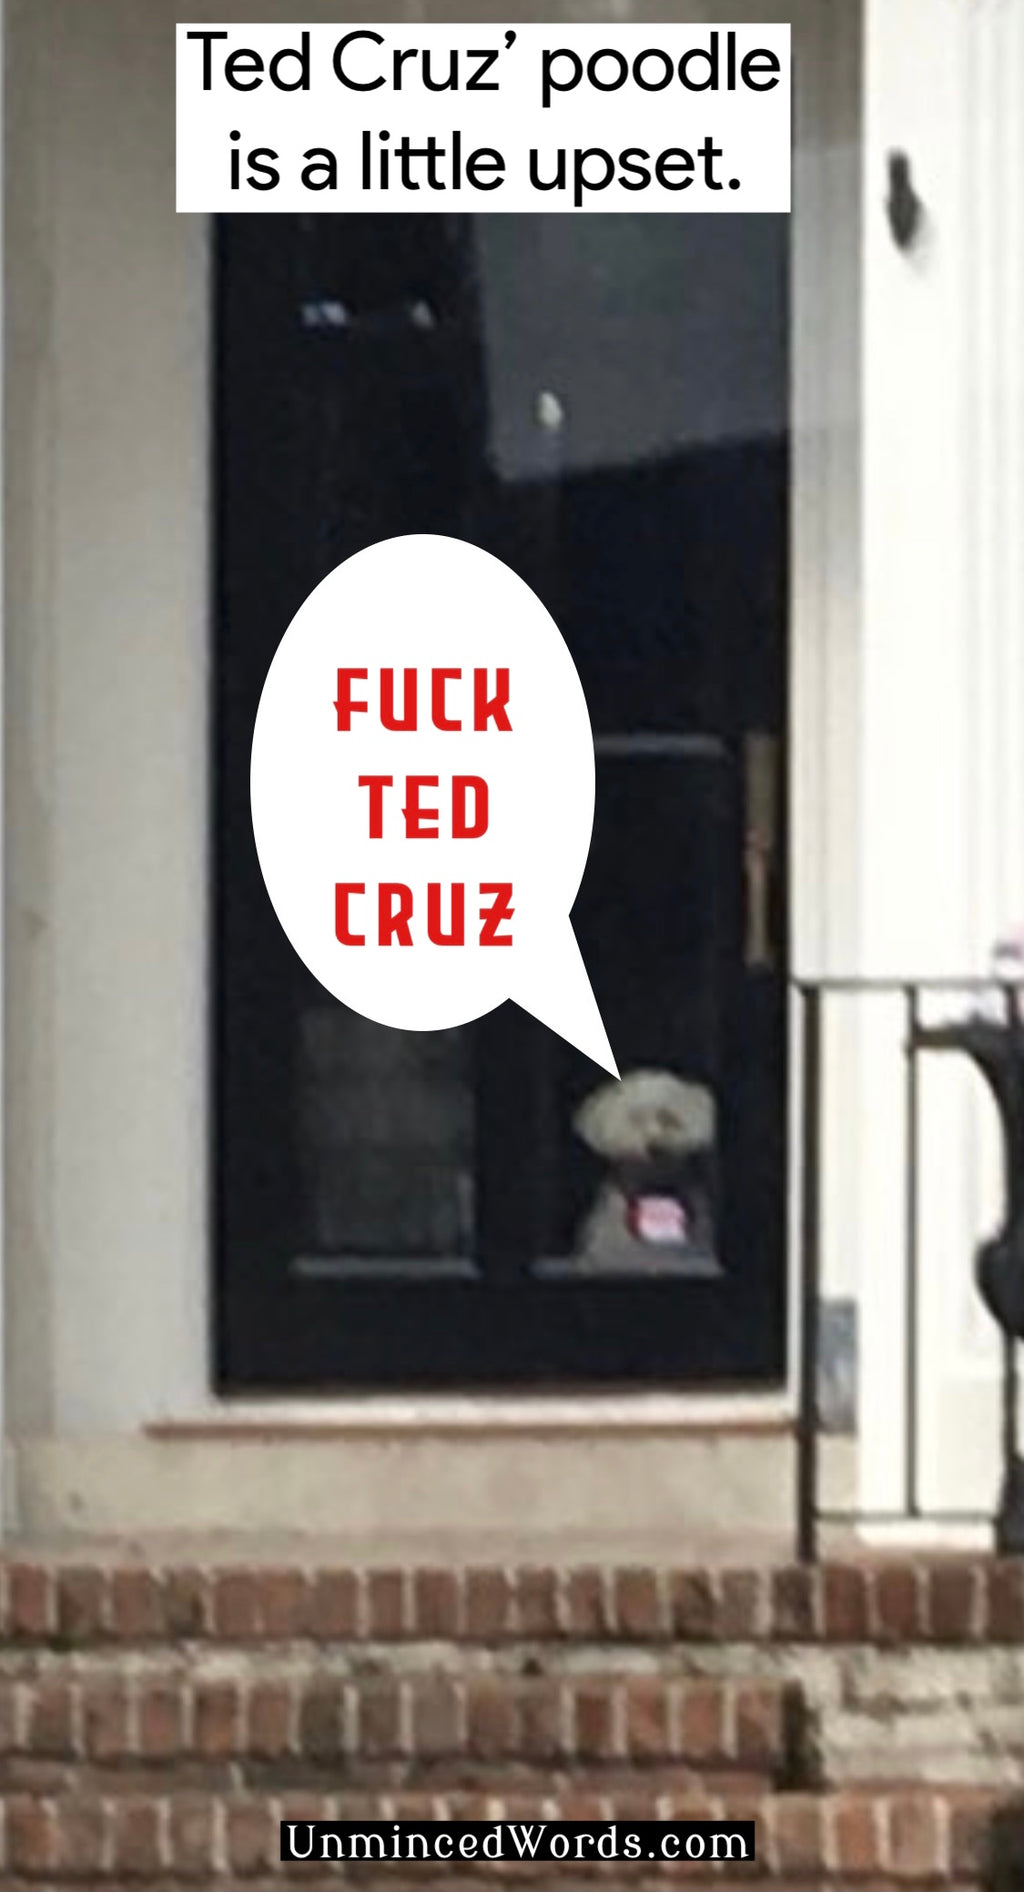 Ted Cruz' poodle is a little upset.